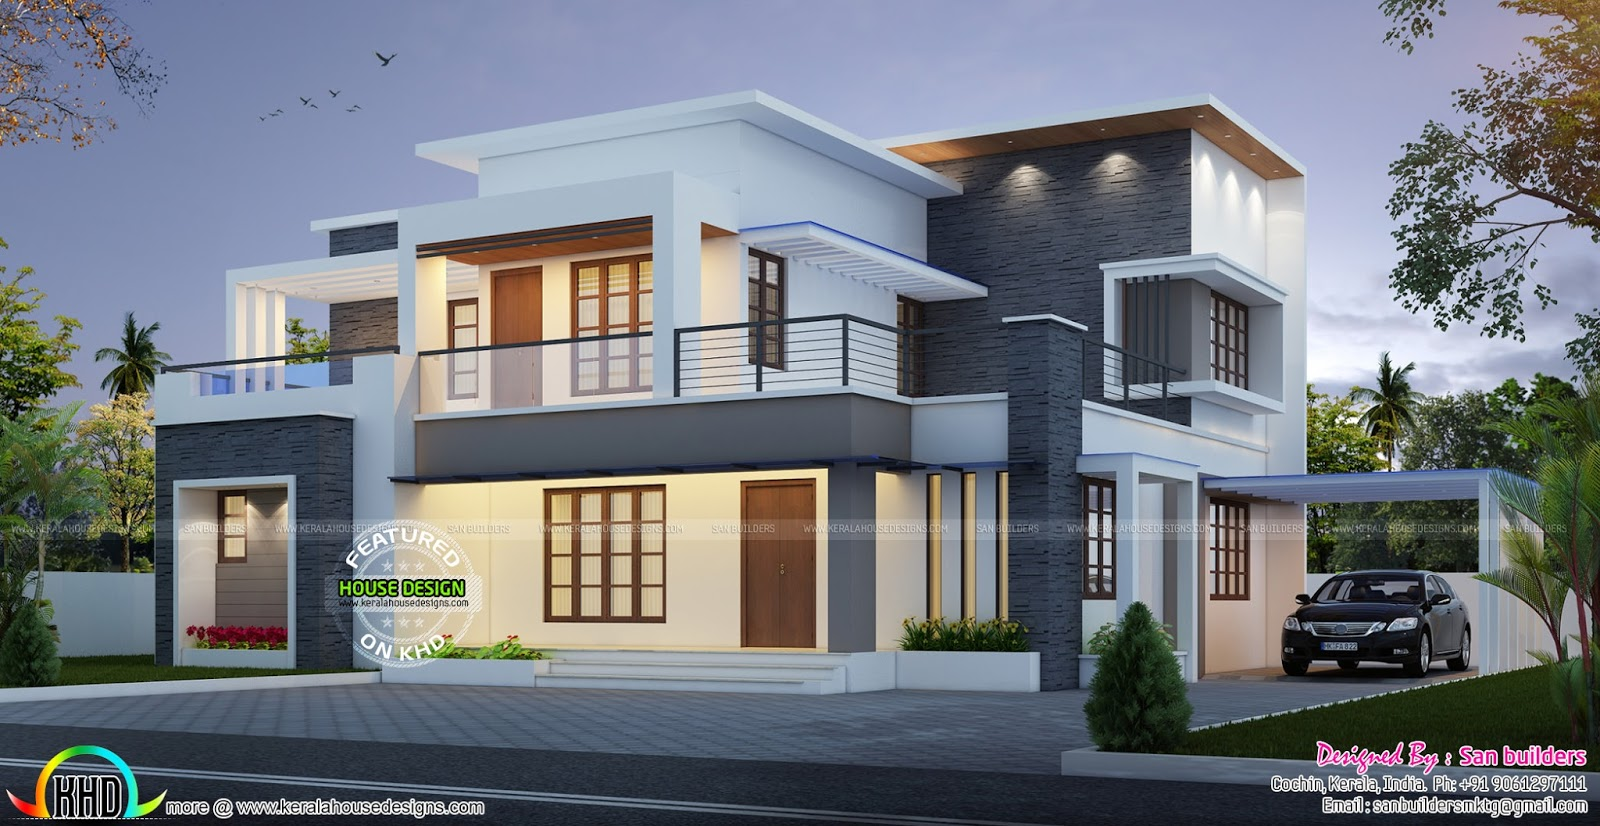 House plan and elevation by san builders kerala home for Contemporary style home plans